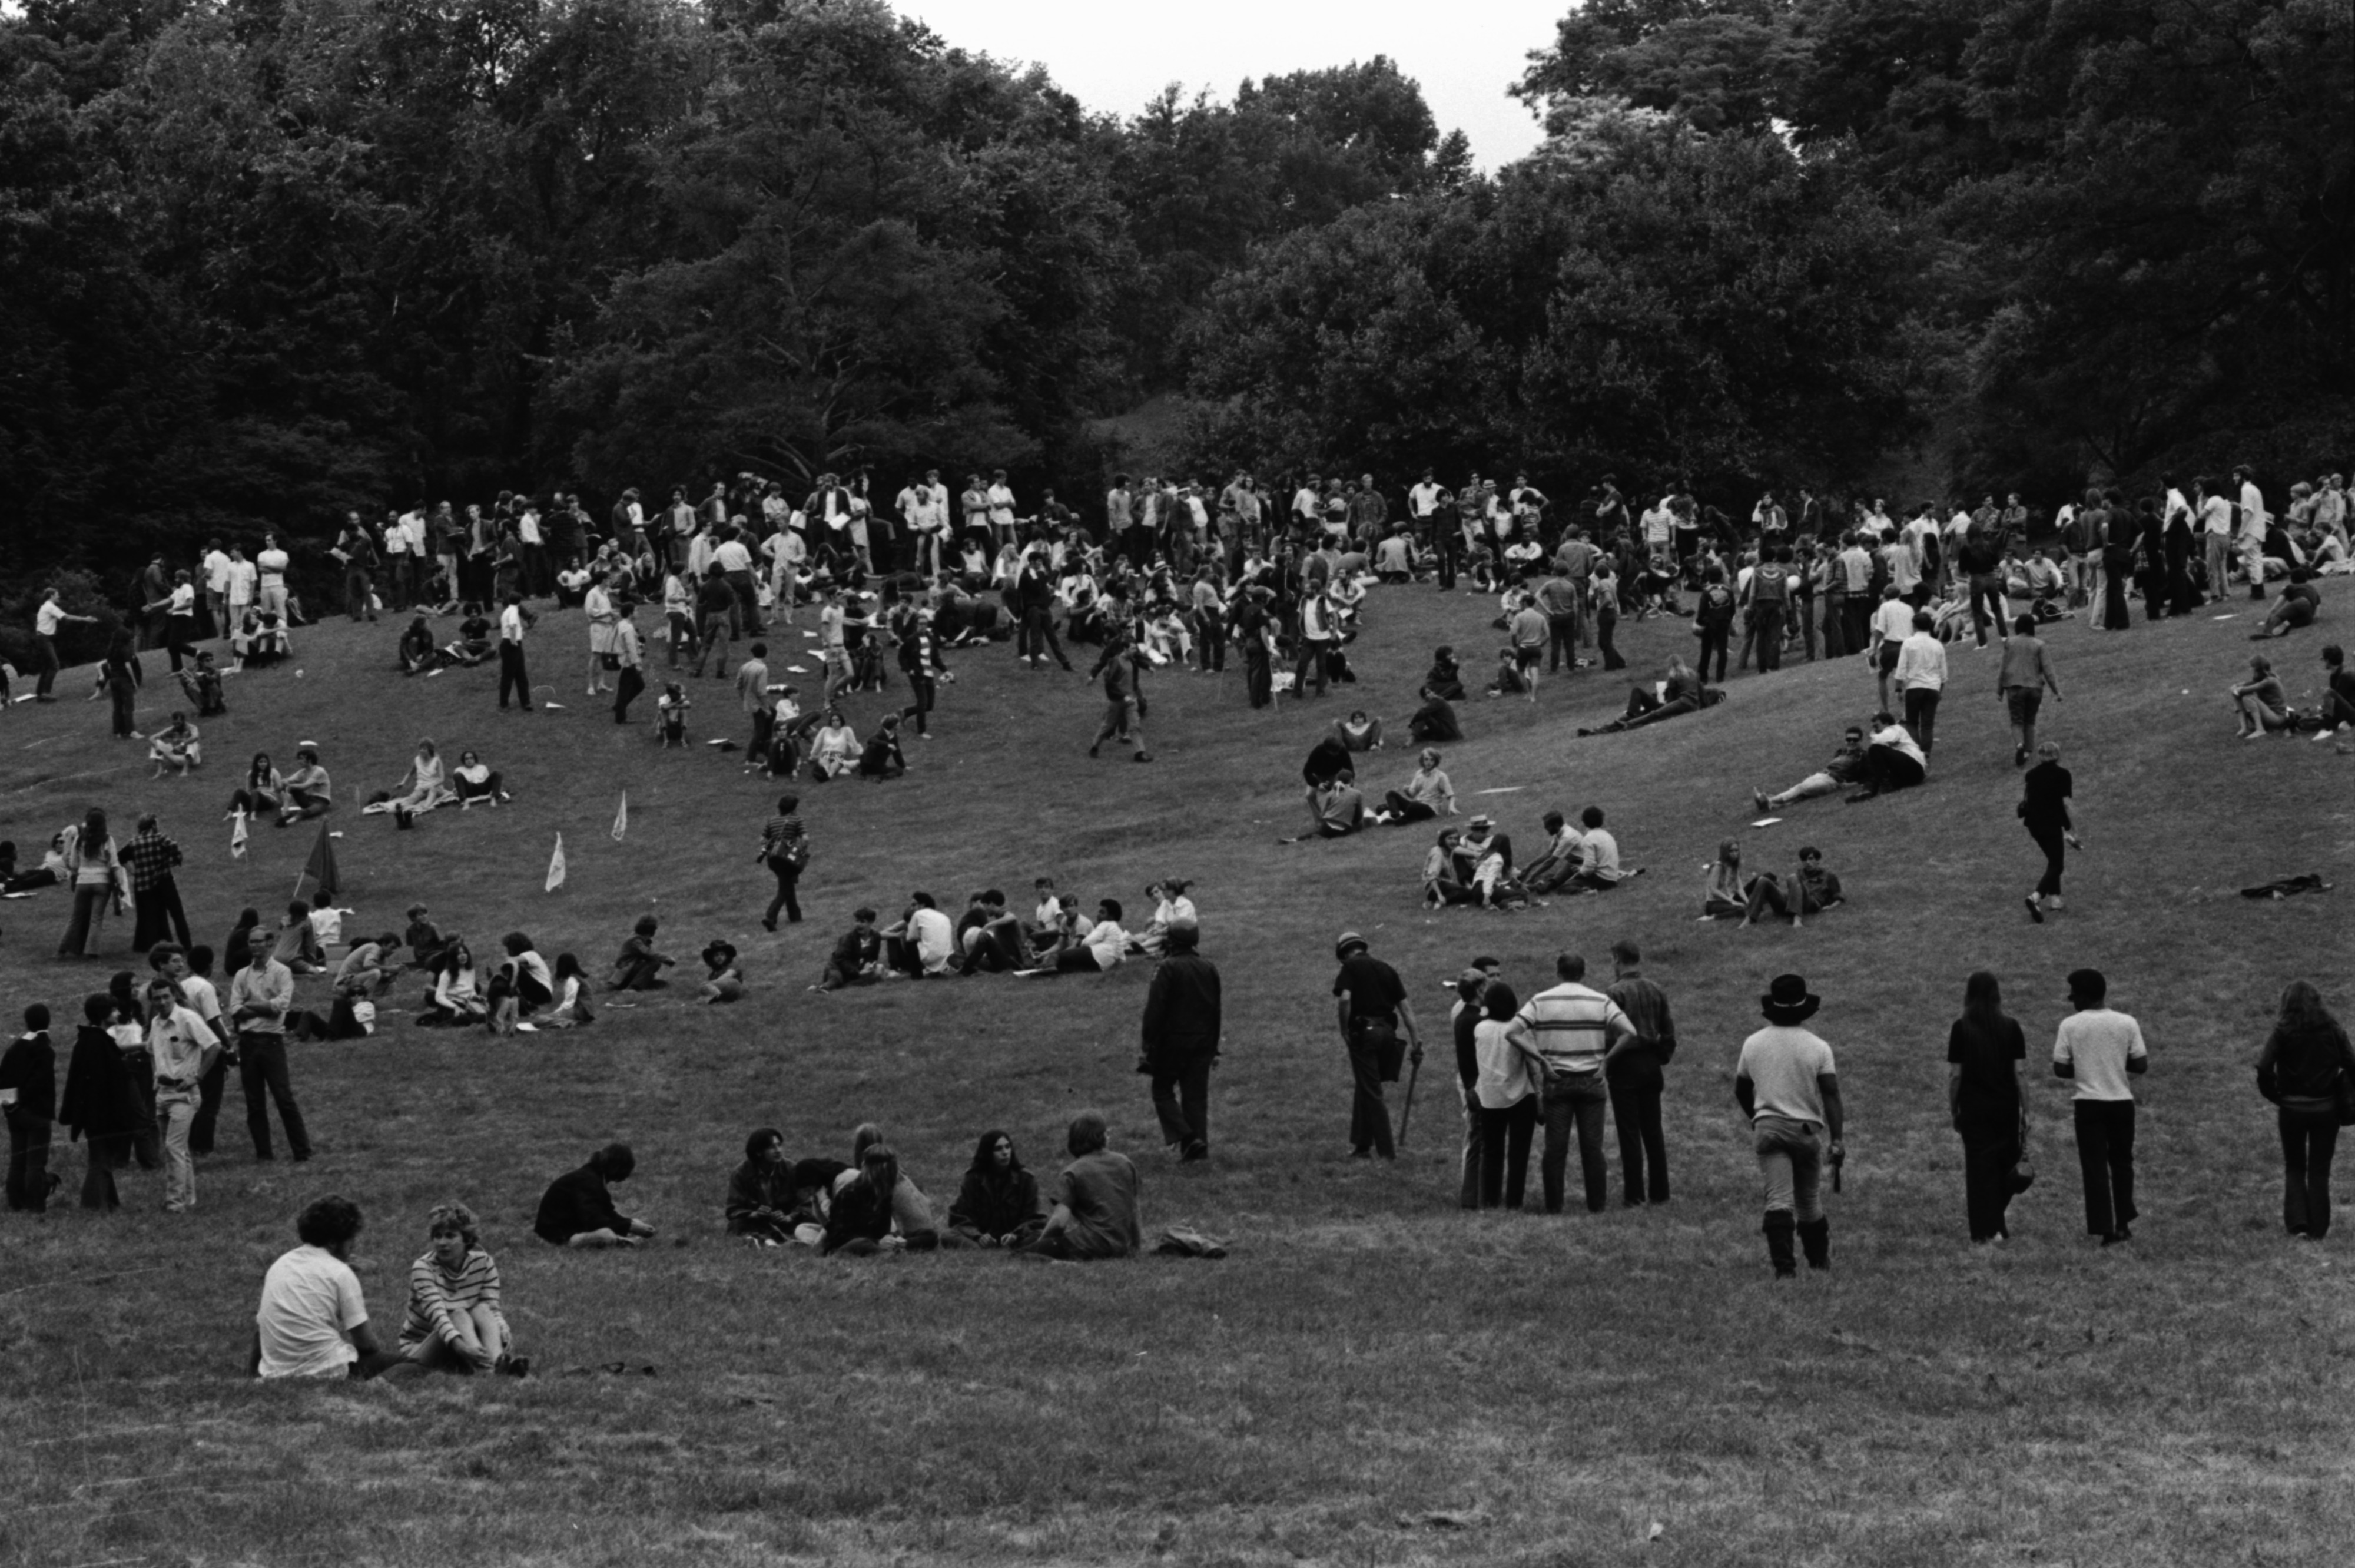 Peace Picnic at the Arboretum, July 1969 image